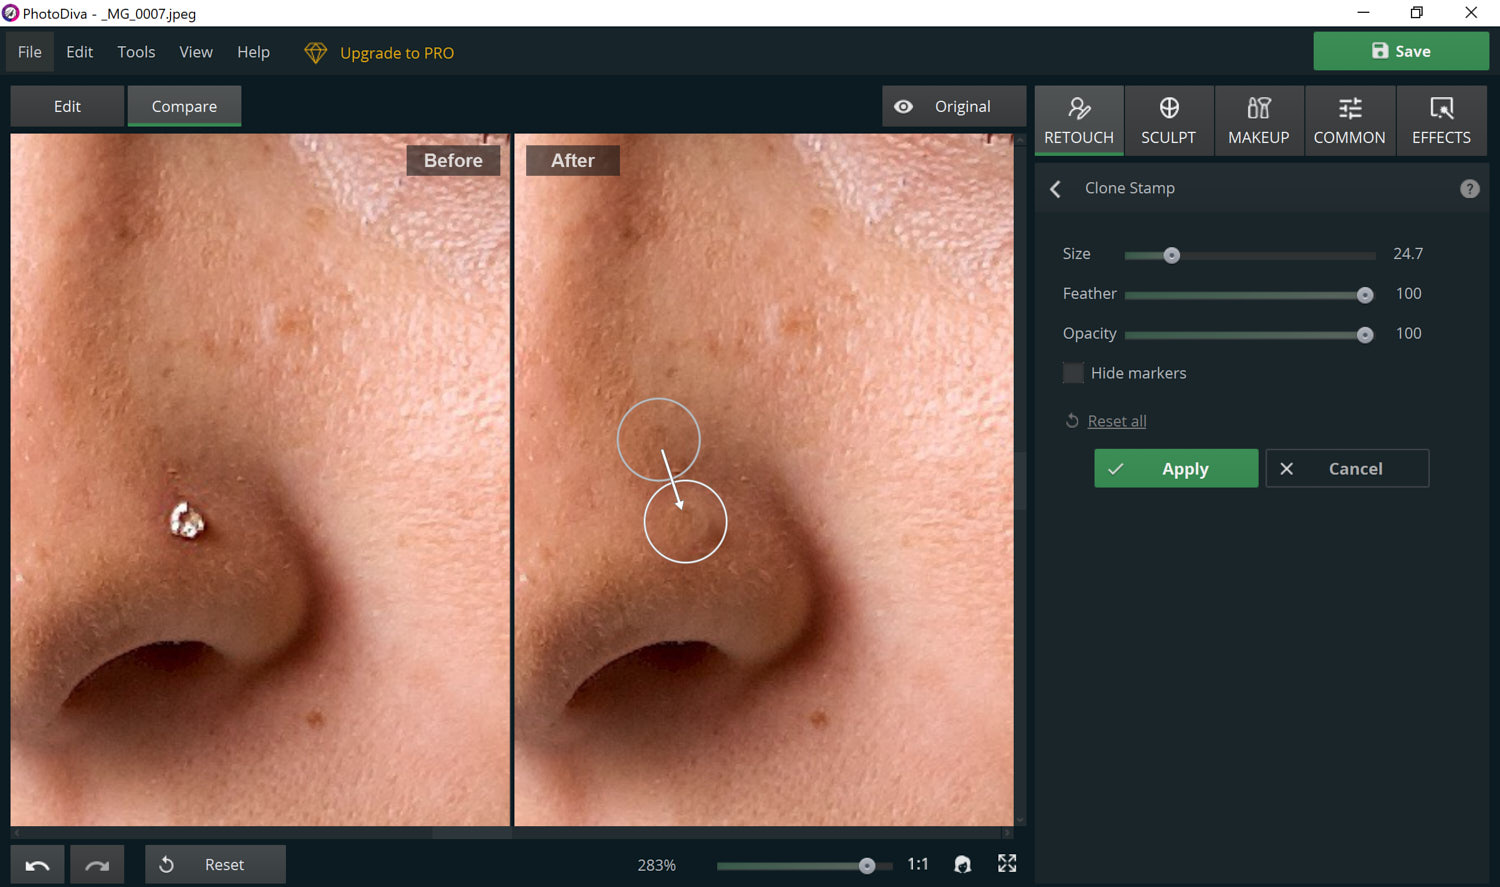 using the clone tool in PhotoDiva to remove a nose stud